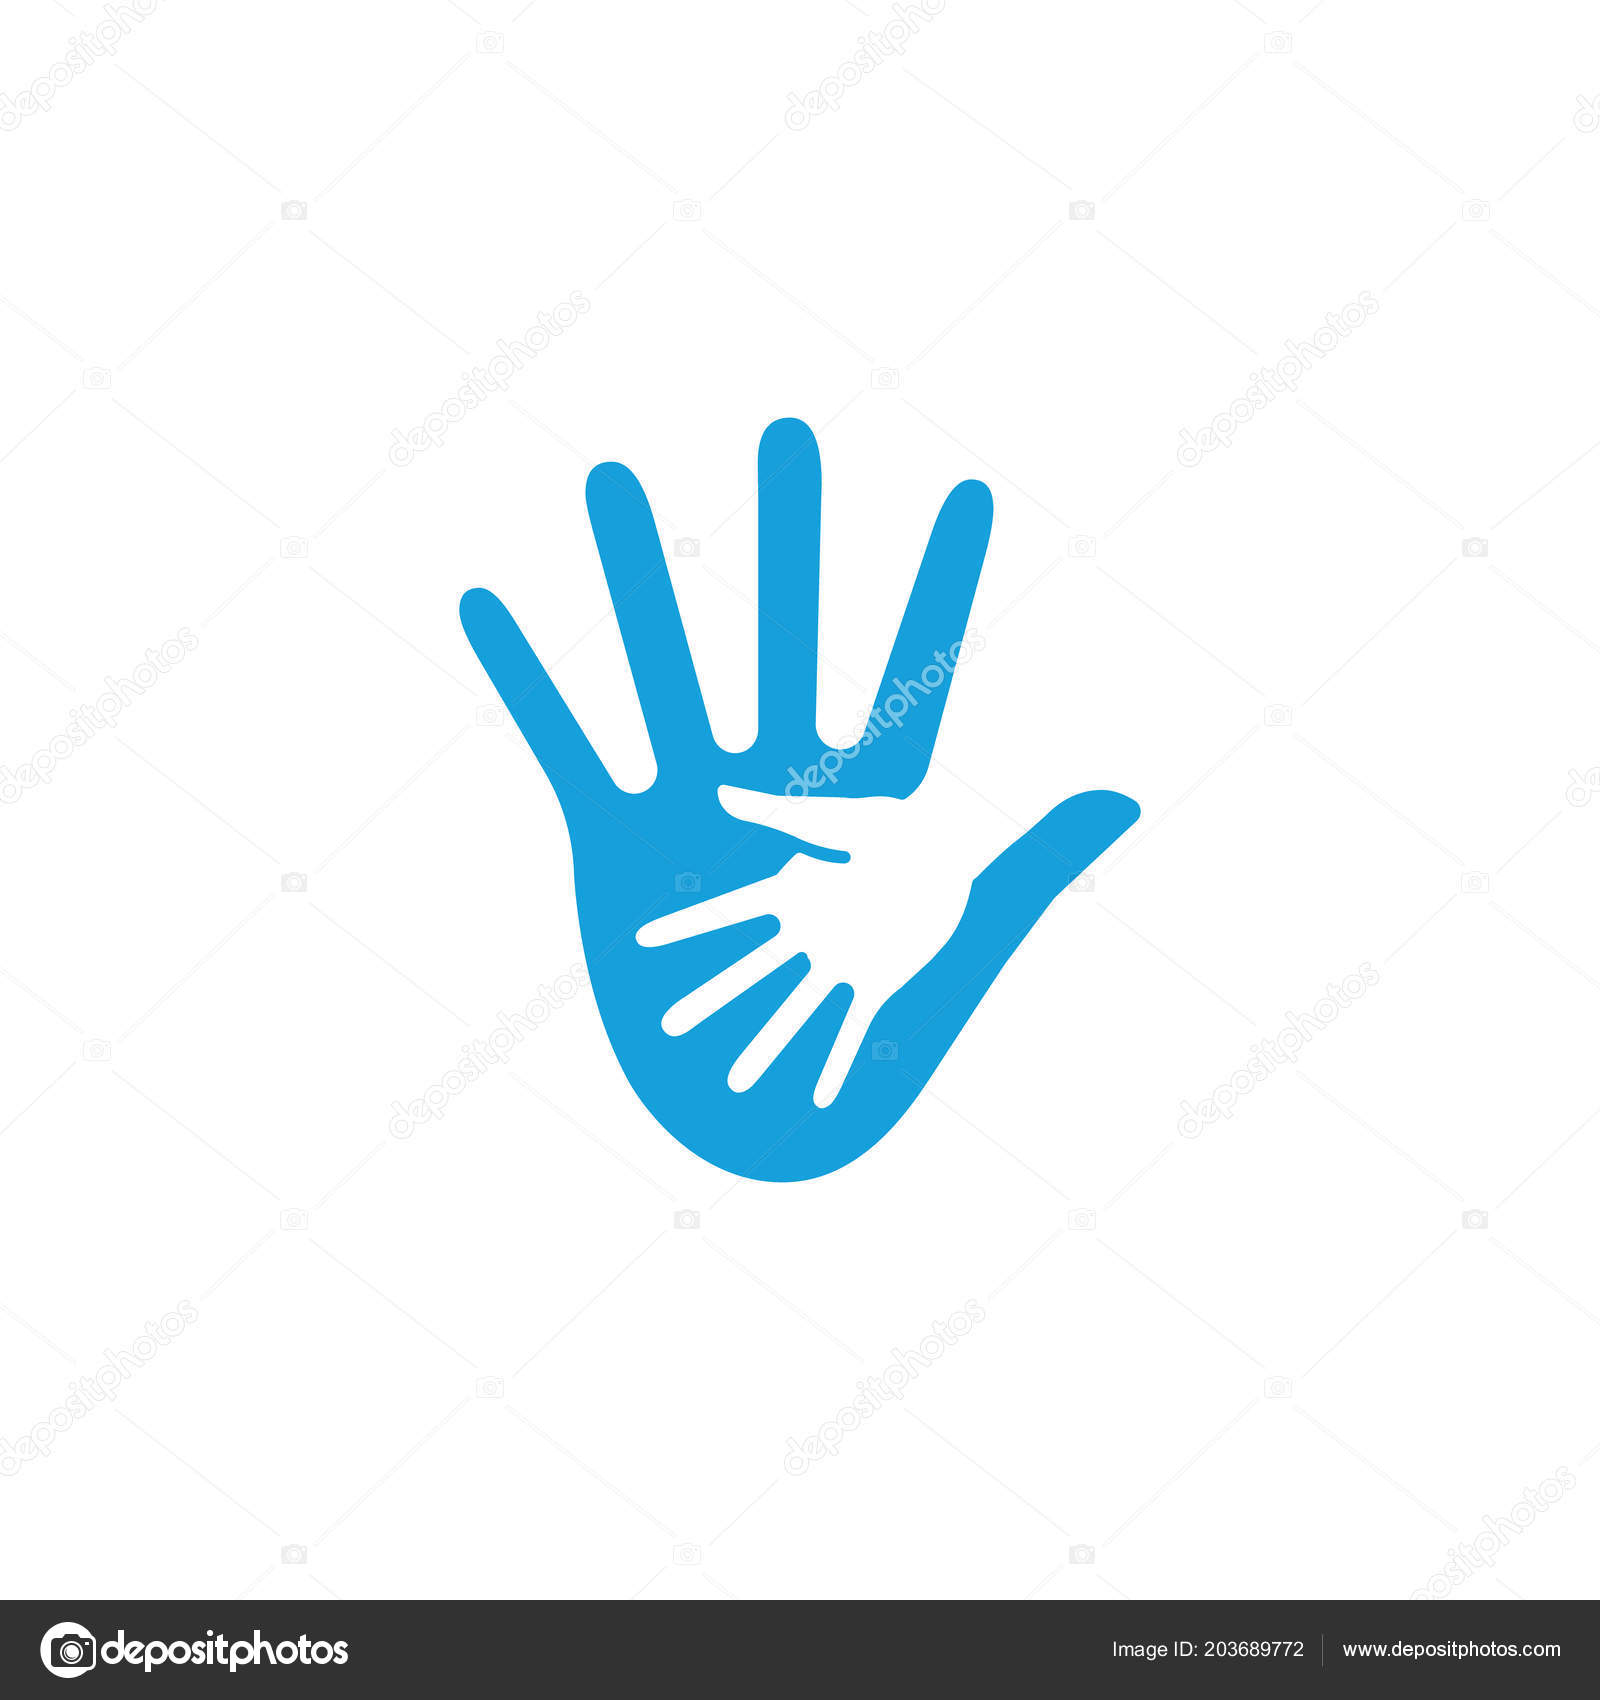 Friendly Gesture Of The Hand In The Hand Abstract Shape